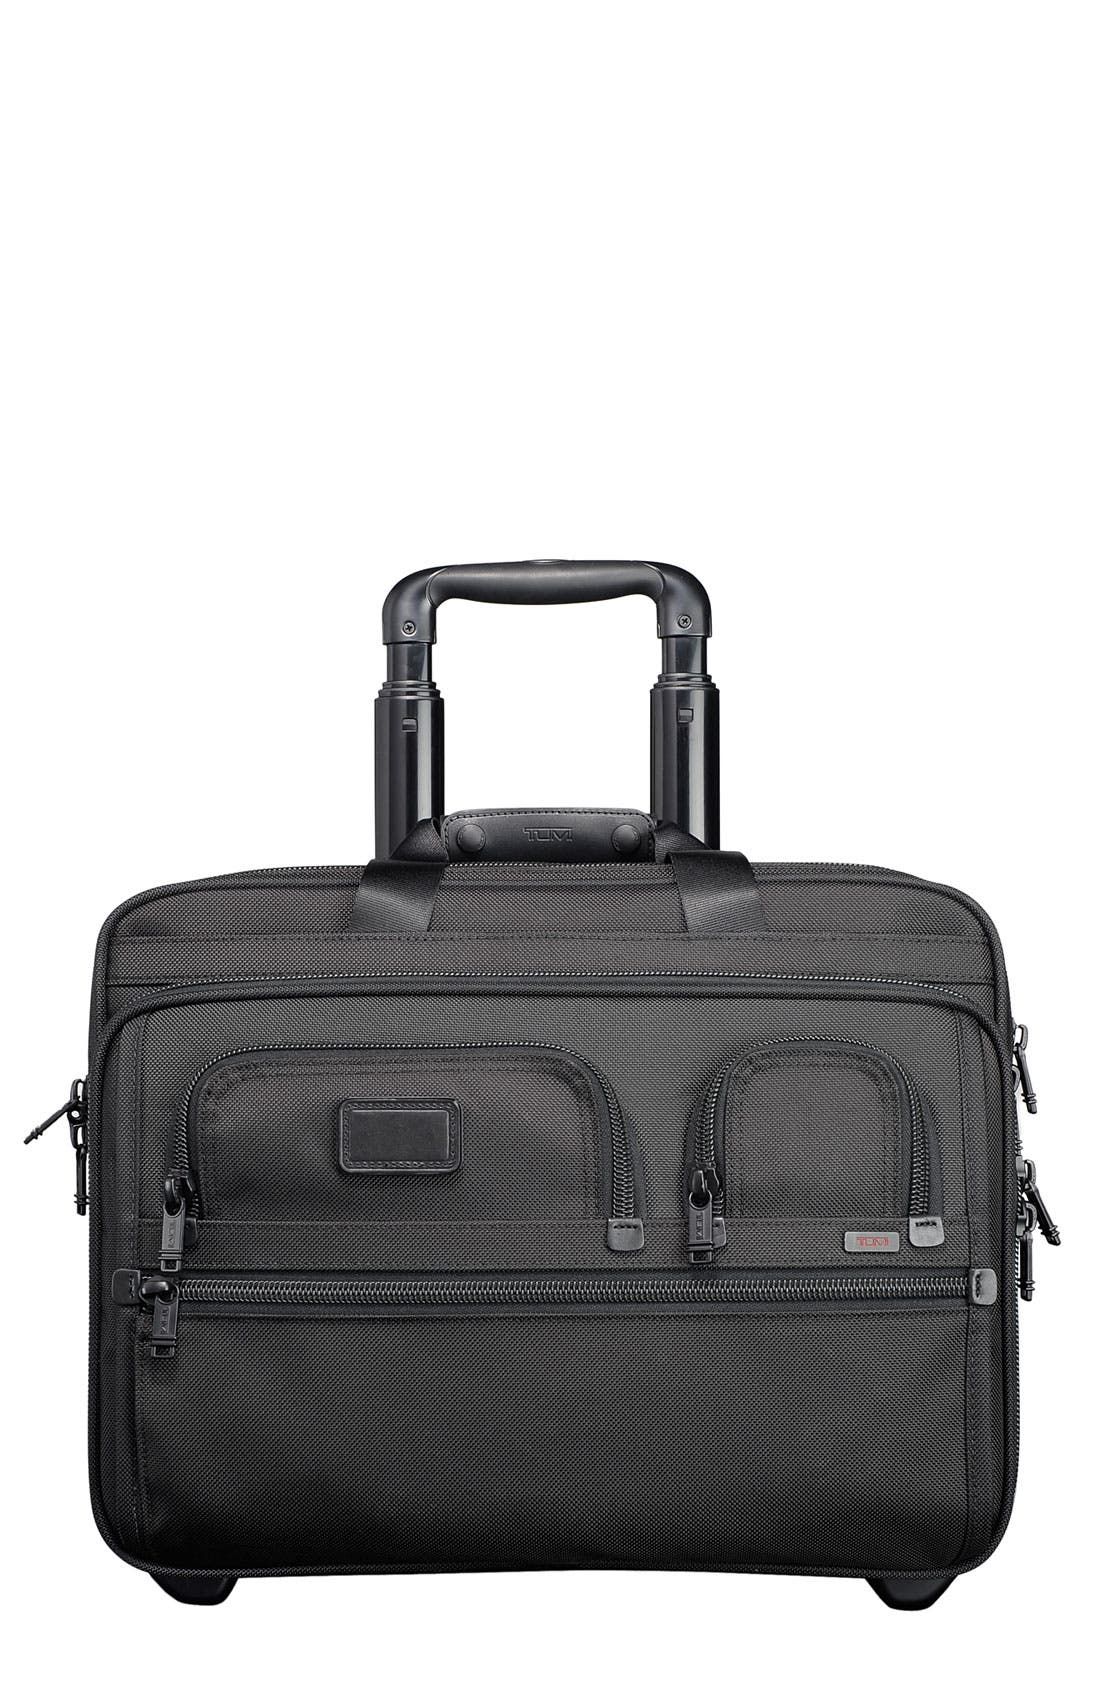 Main Image - Tumi 'Alpha' Deluxe Wheeled Briefcase with Laptop Case